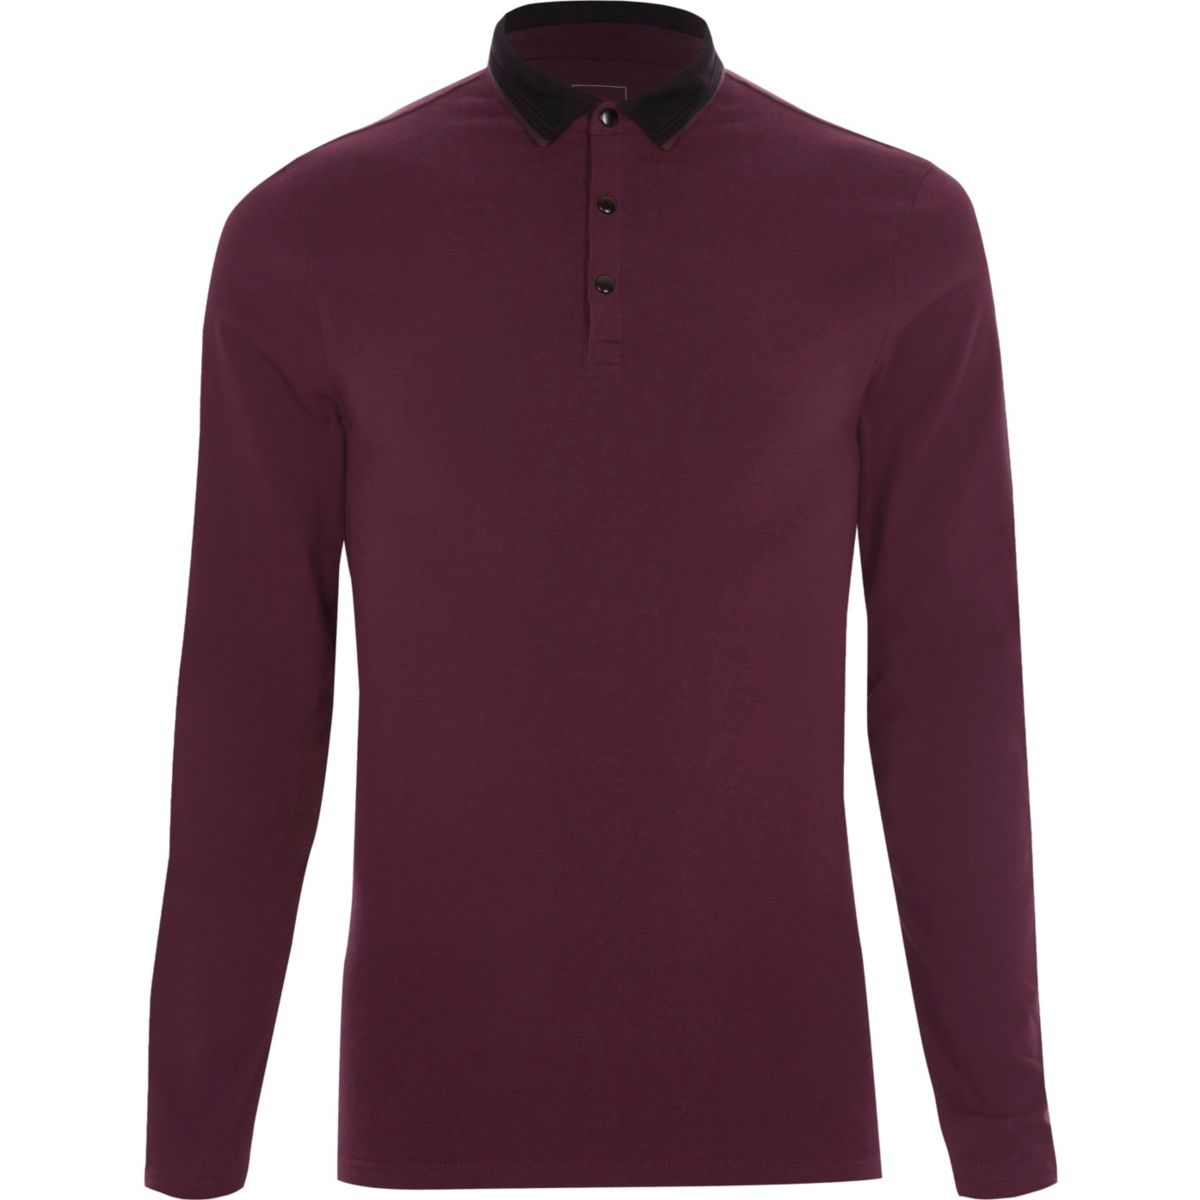 Burgundy Tipped Muscle Fit Polo Shirt Polo Shirts Sale: burgundy polo shirt boys